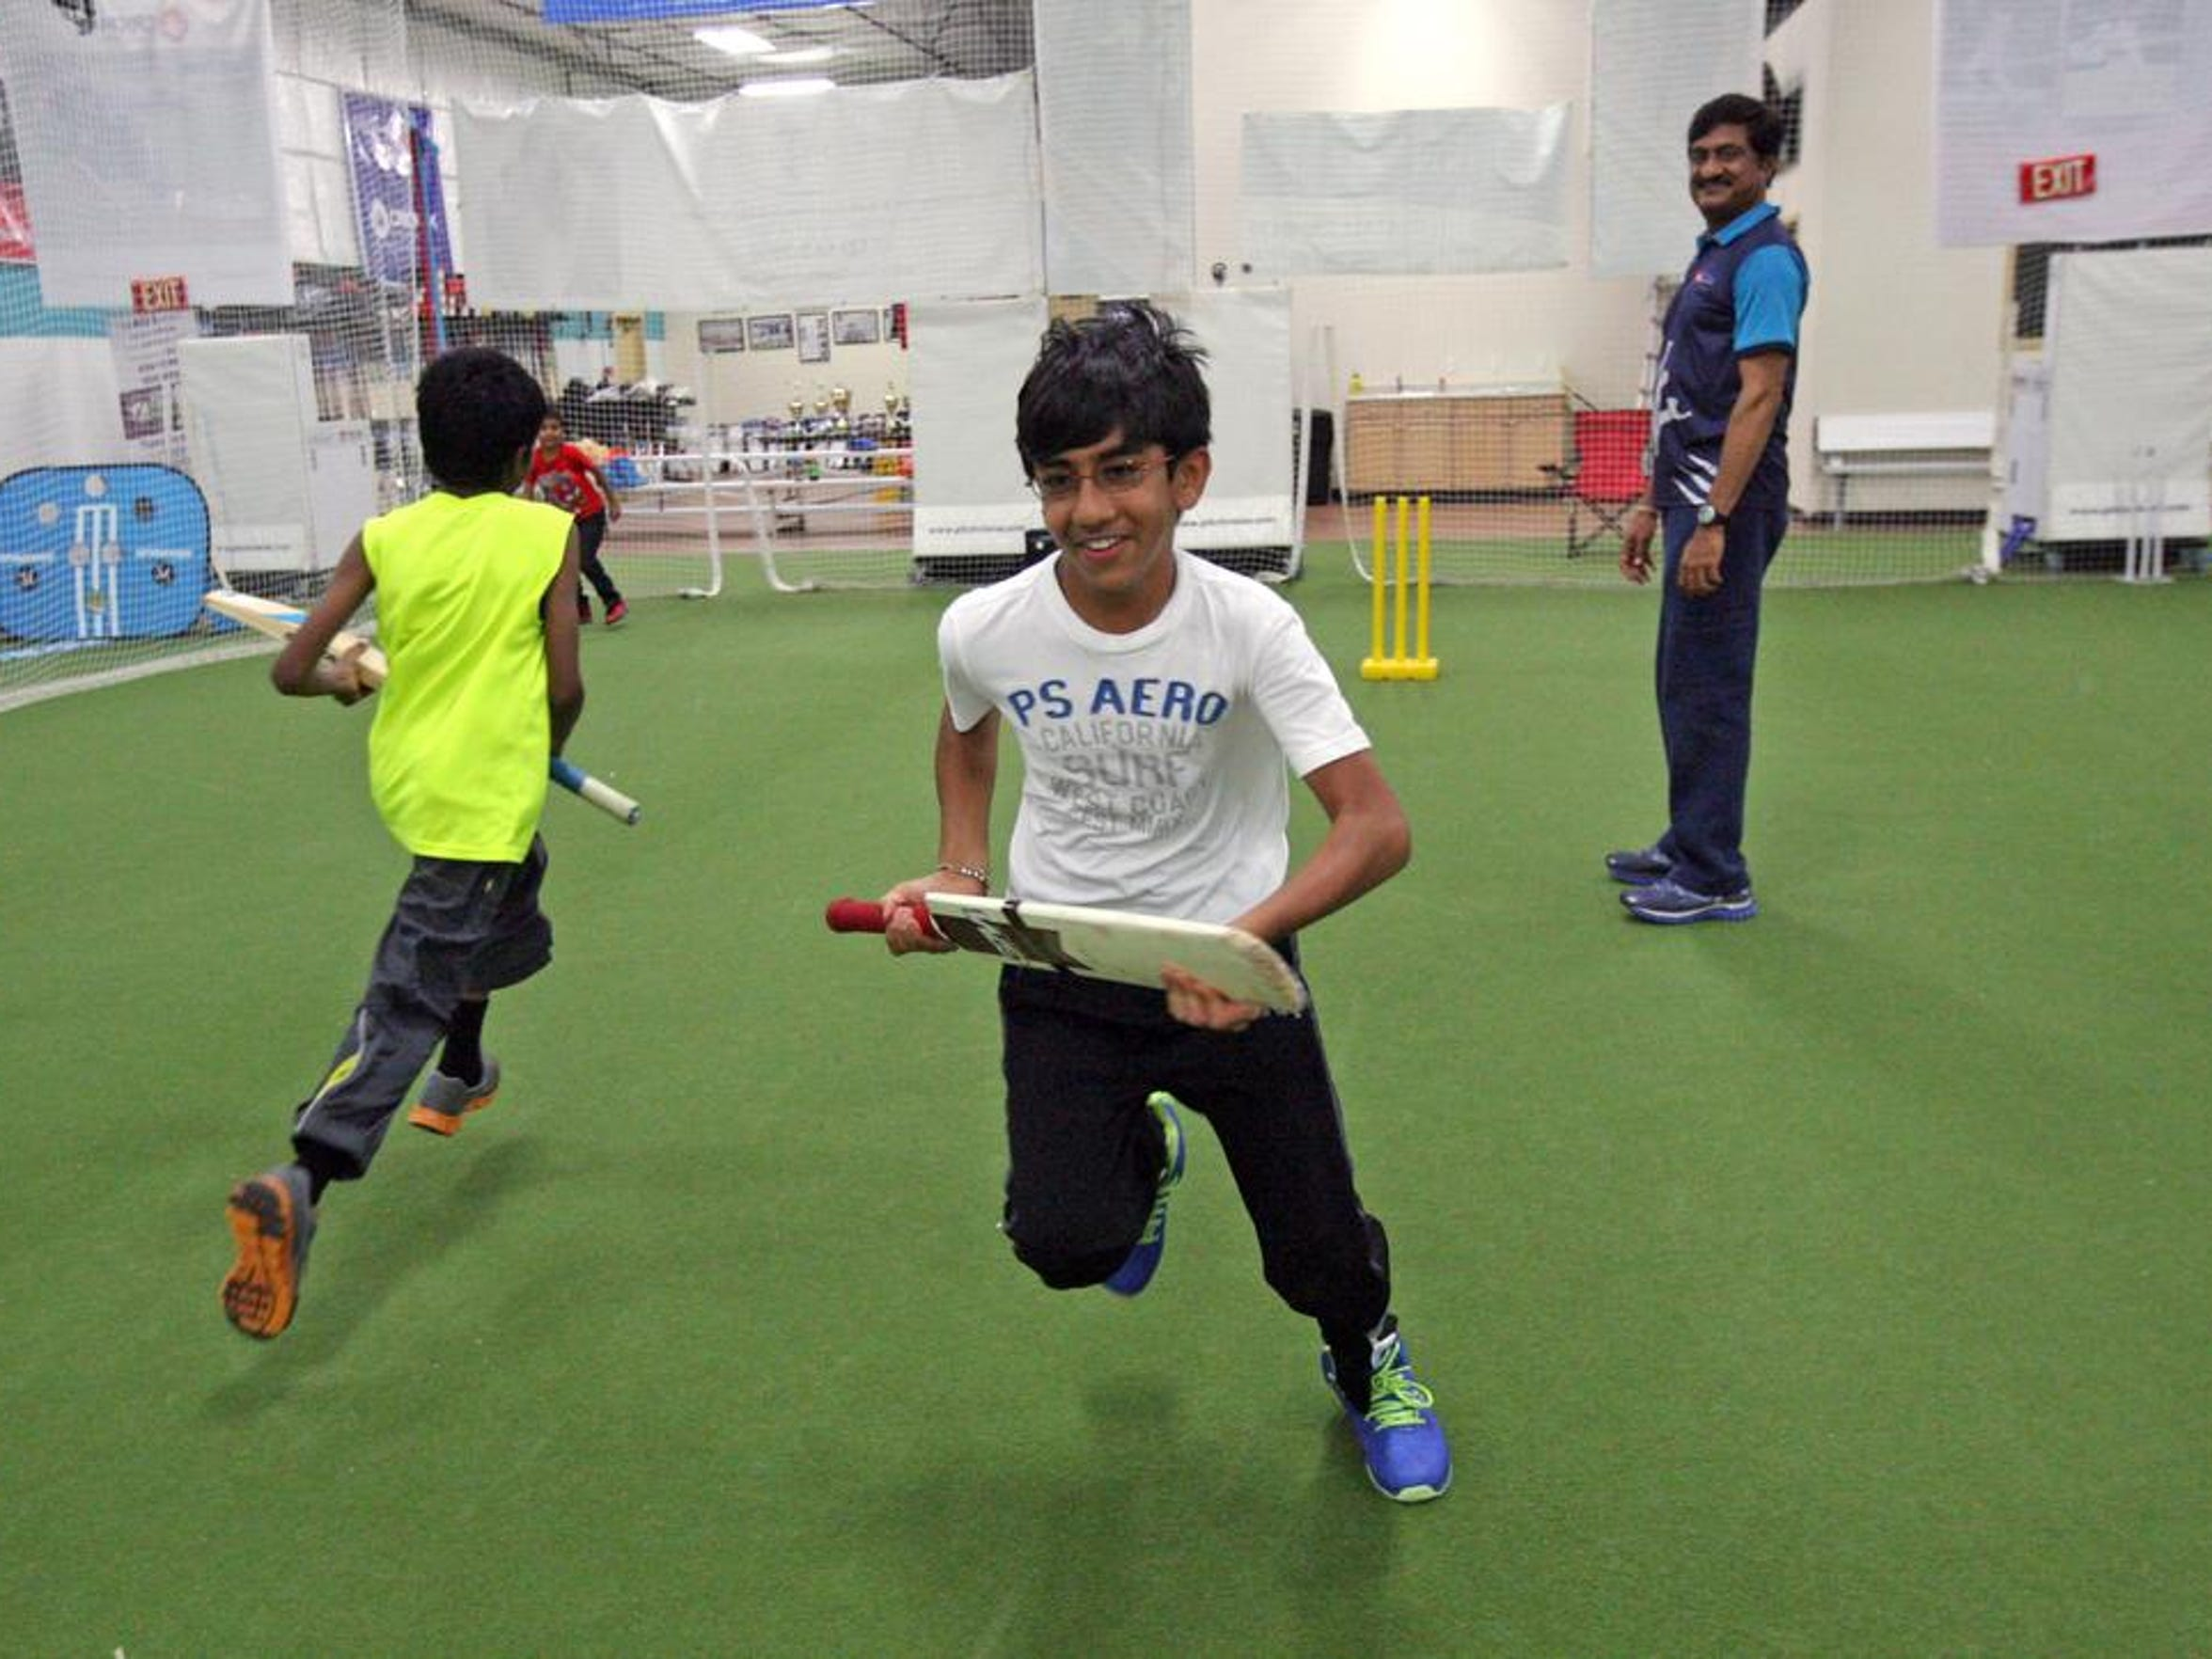 craze of cricket Nj cricket craze fueled by growing indian community indian immigrants are changing the face of central new jersey, one cricket pitch at a time.